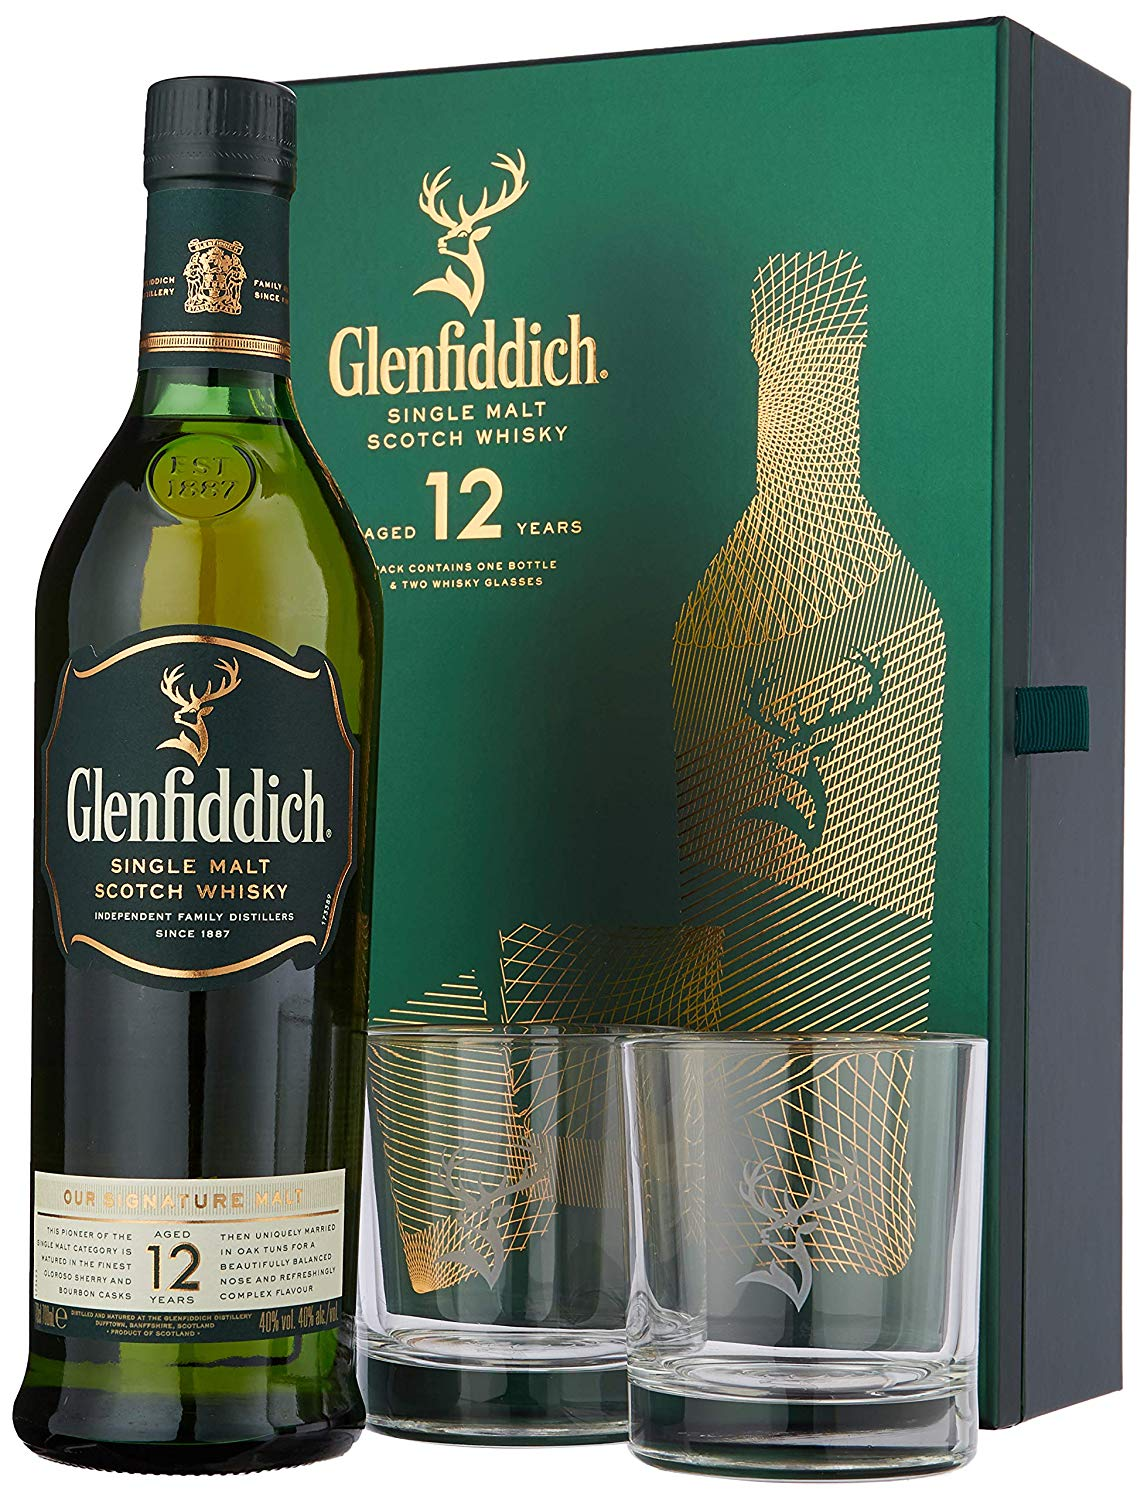 Glenfiddich 12yo gift set with glasses